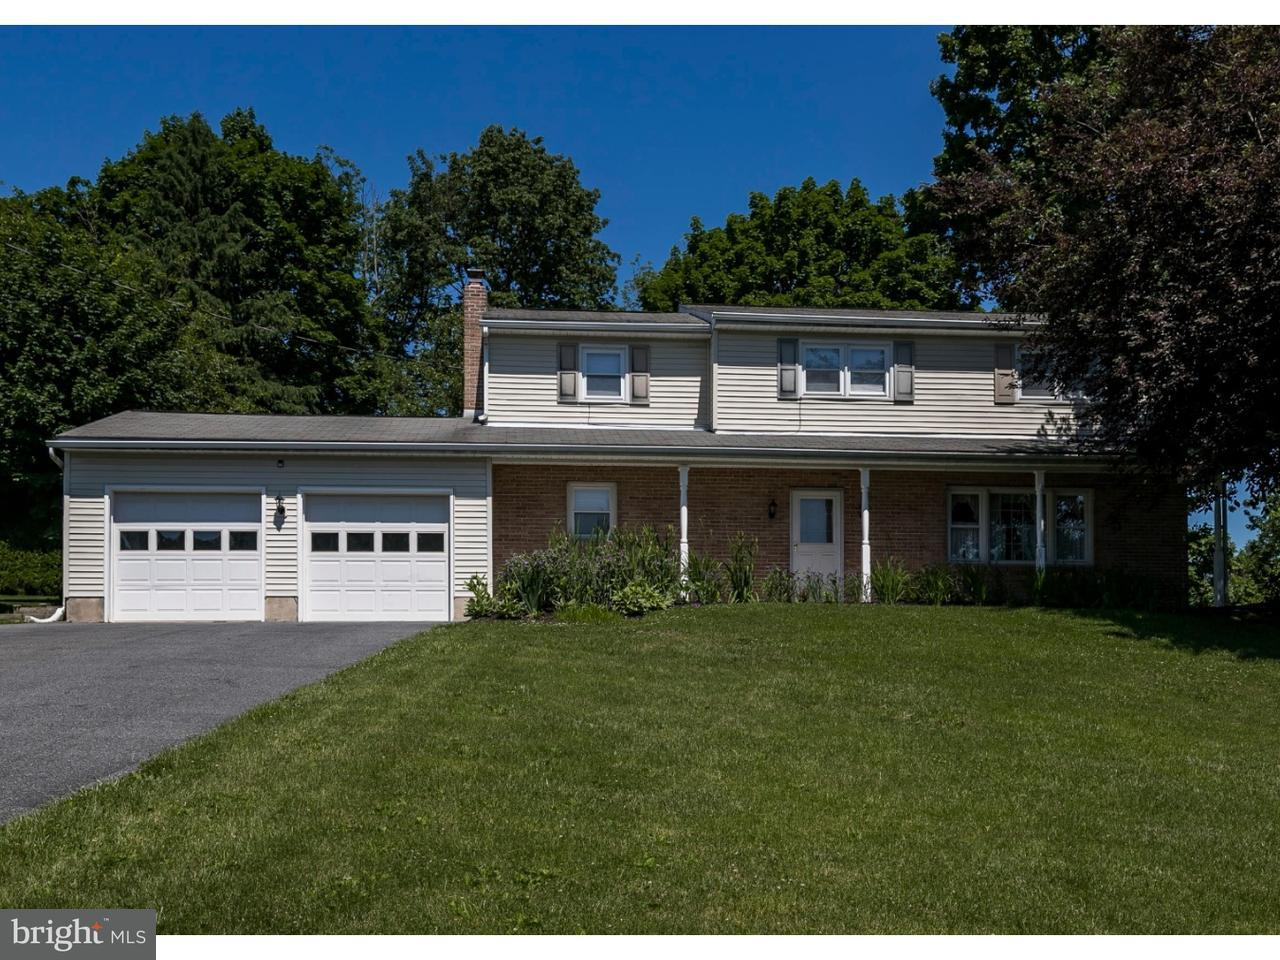 Single Family Home for Sale at 40 CLAY SLATE Road Oley, Pennsylvania 19547 United States